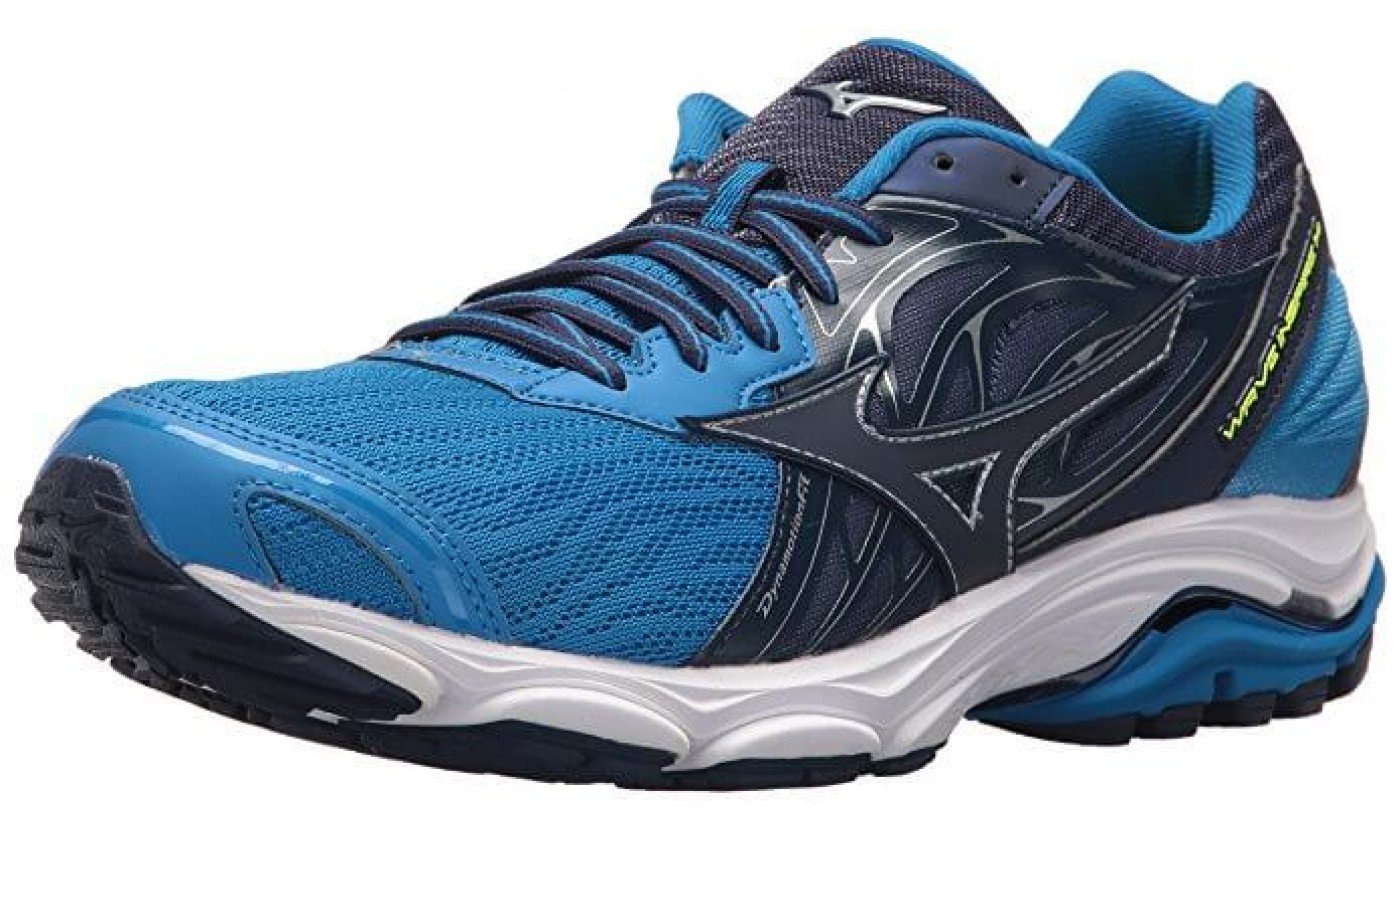 The Mizuno Wave Inspire 14 angled side perspective